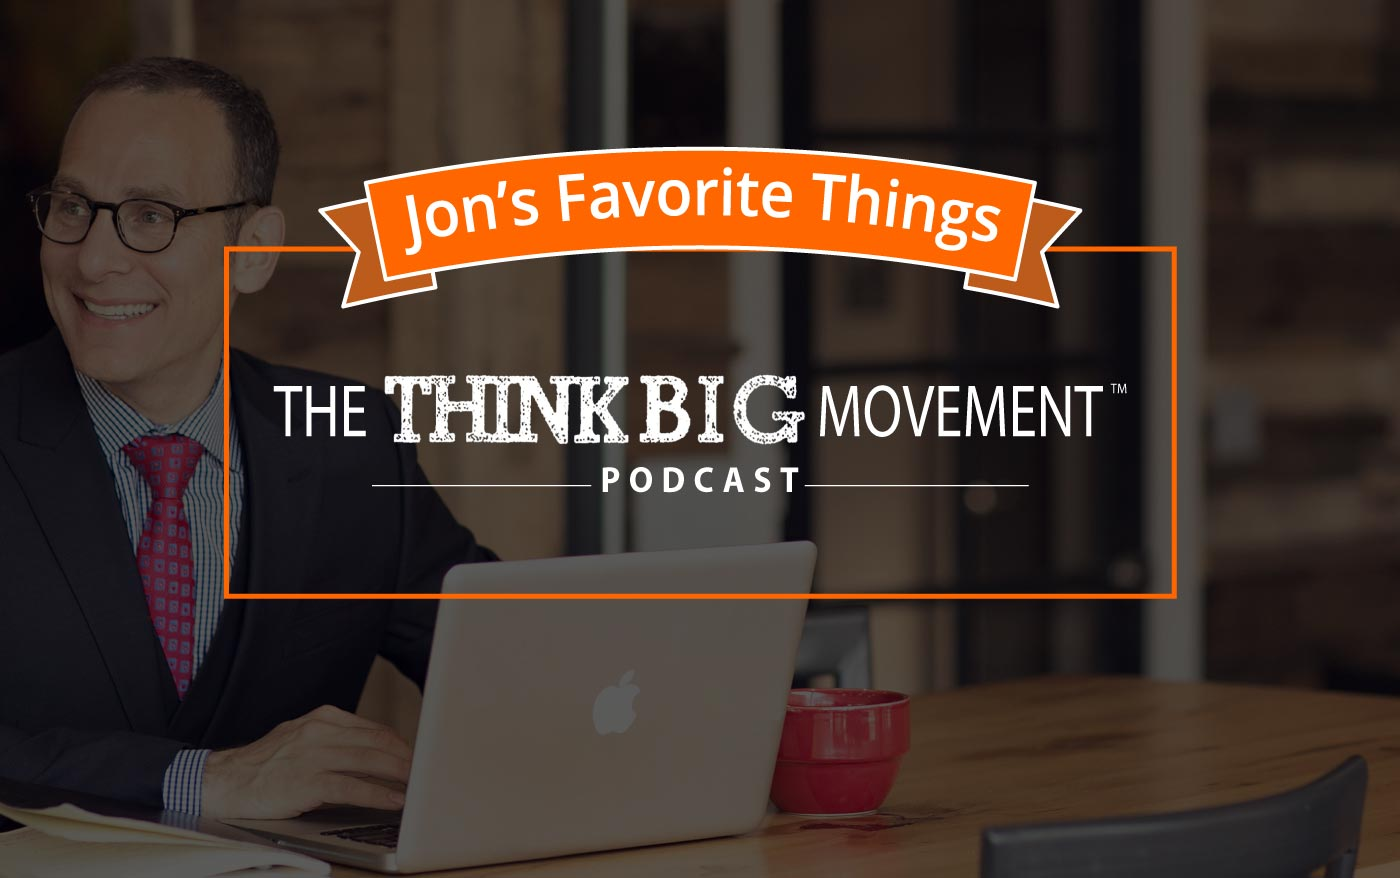 The Think Big Podcast - Jon's Favorite Things: